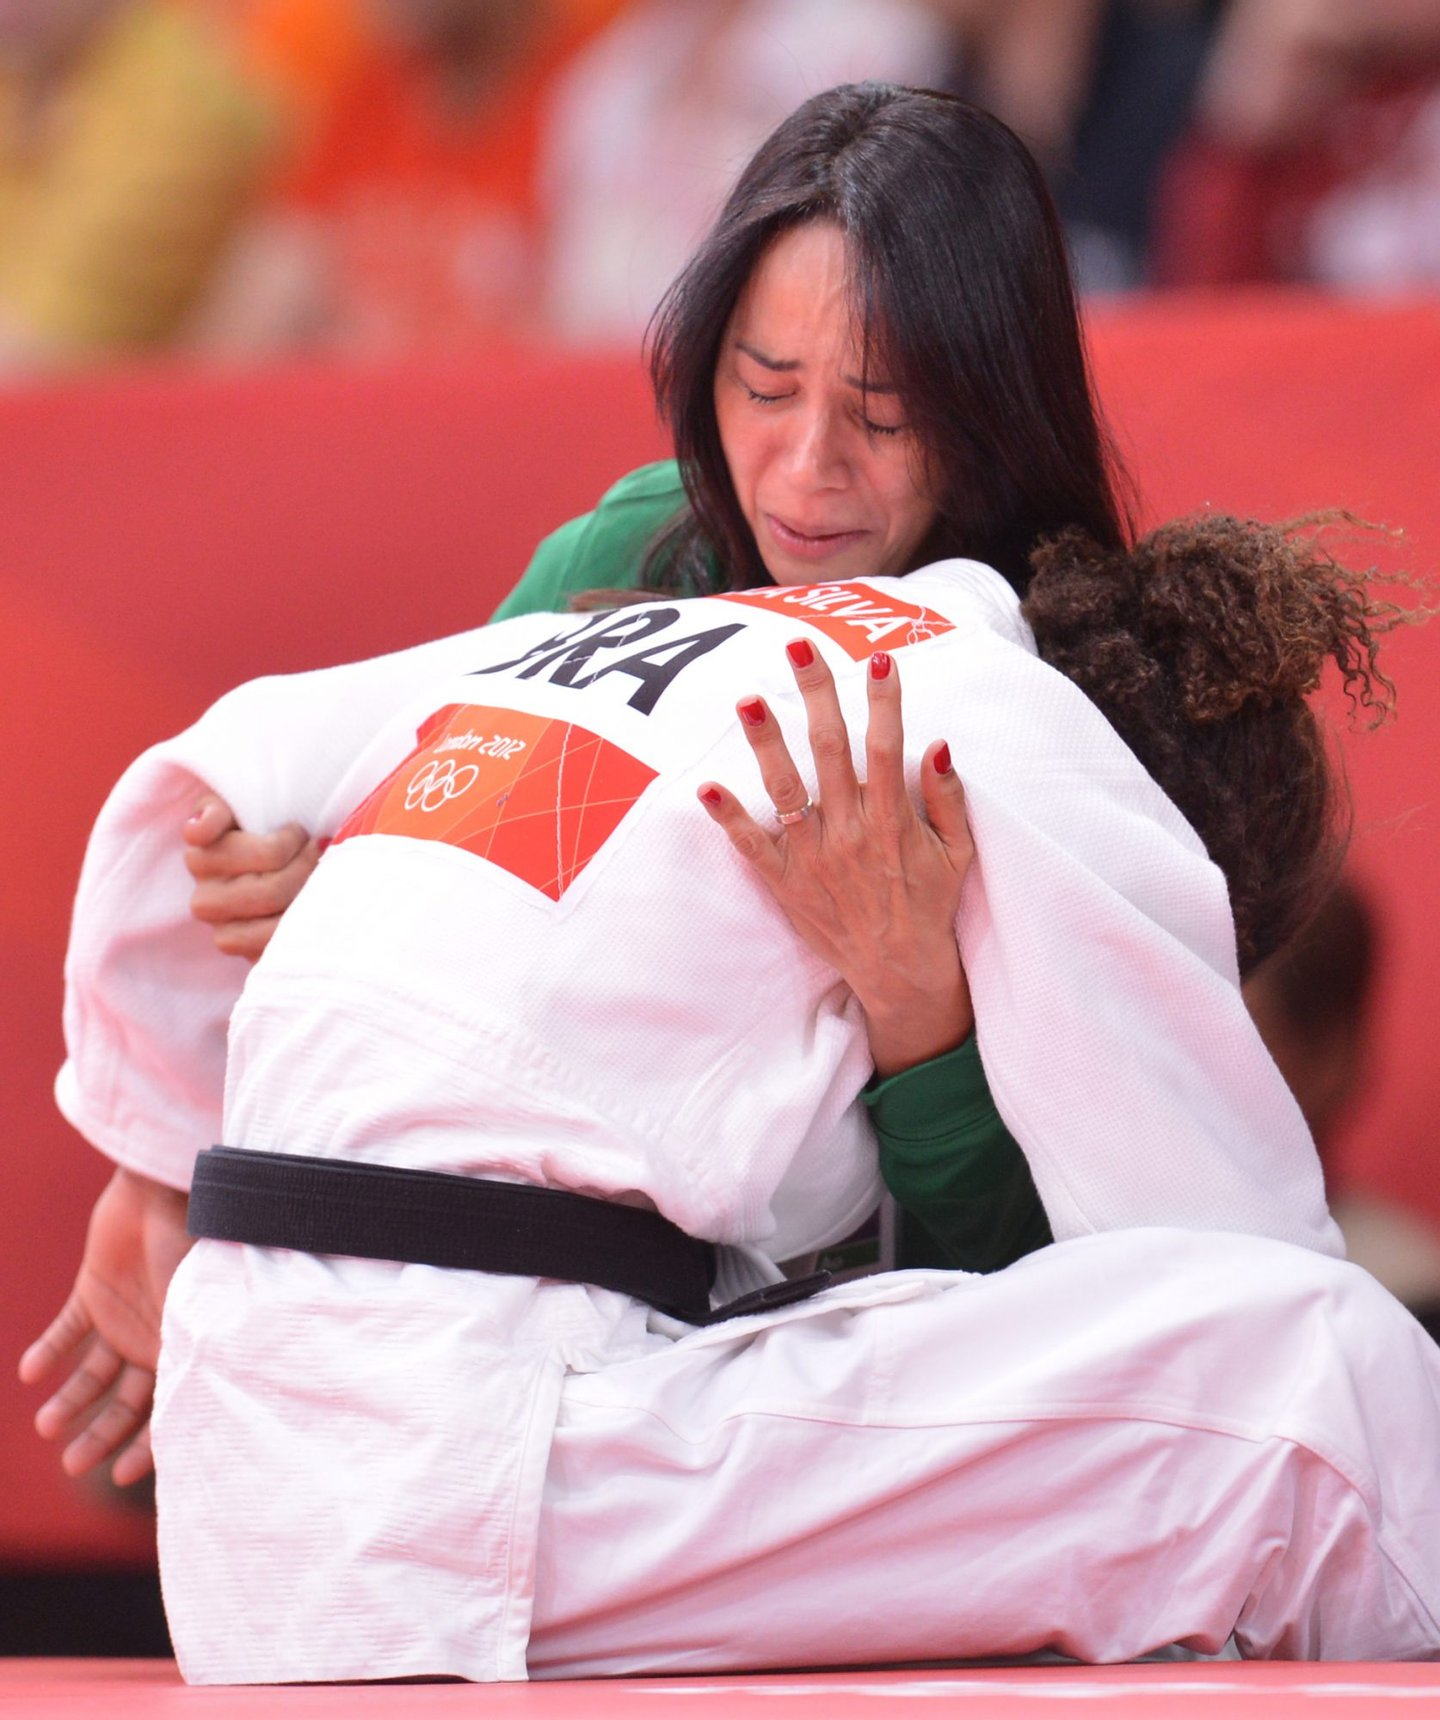 Brazil's Rafaela Silva commissarates with her coach Campos Rosicleia, after losing against Hungary's Hedvig Karakas during their women's -57kg judo contest match of the London 2012 Olympic Games on July 30, 2012 ExCel arena in London. AFP PHOTO / JOHANNES EISELE (Photo credit should read JOHANNES EISELE/AFP/GettyImages)